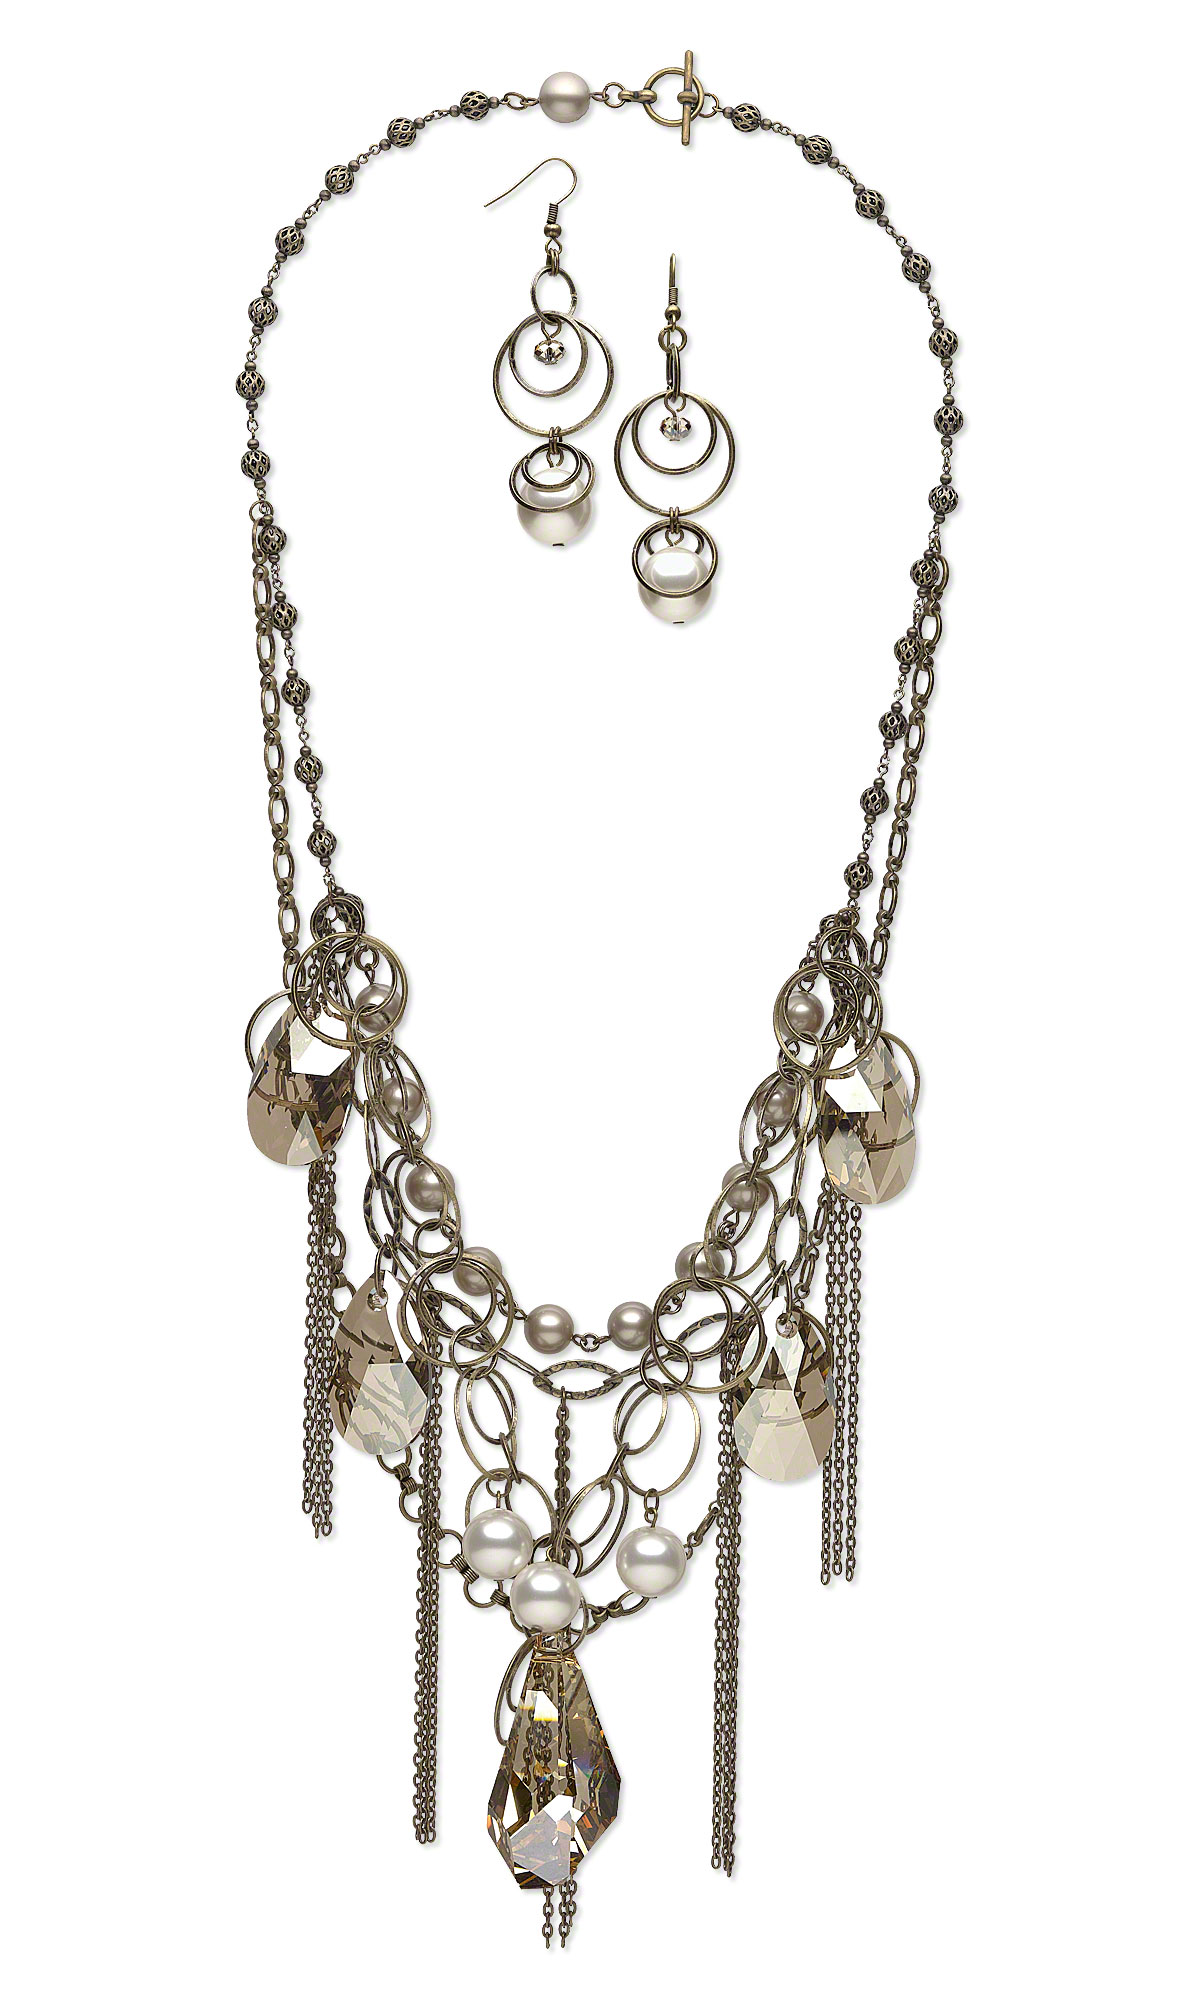 Jewelry Design Multi Strand Messy Chain Necklace With